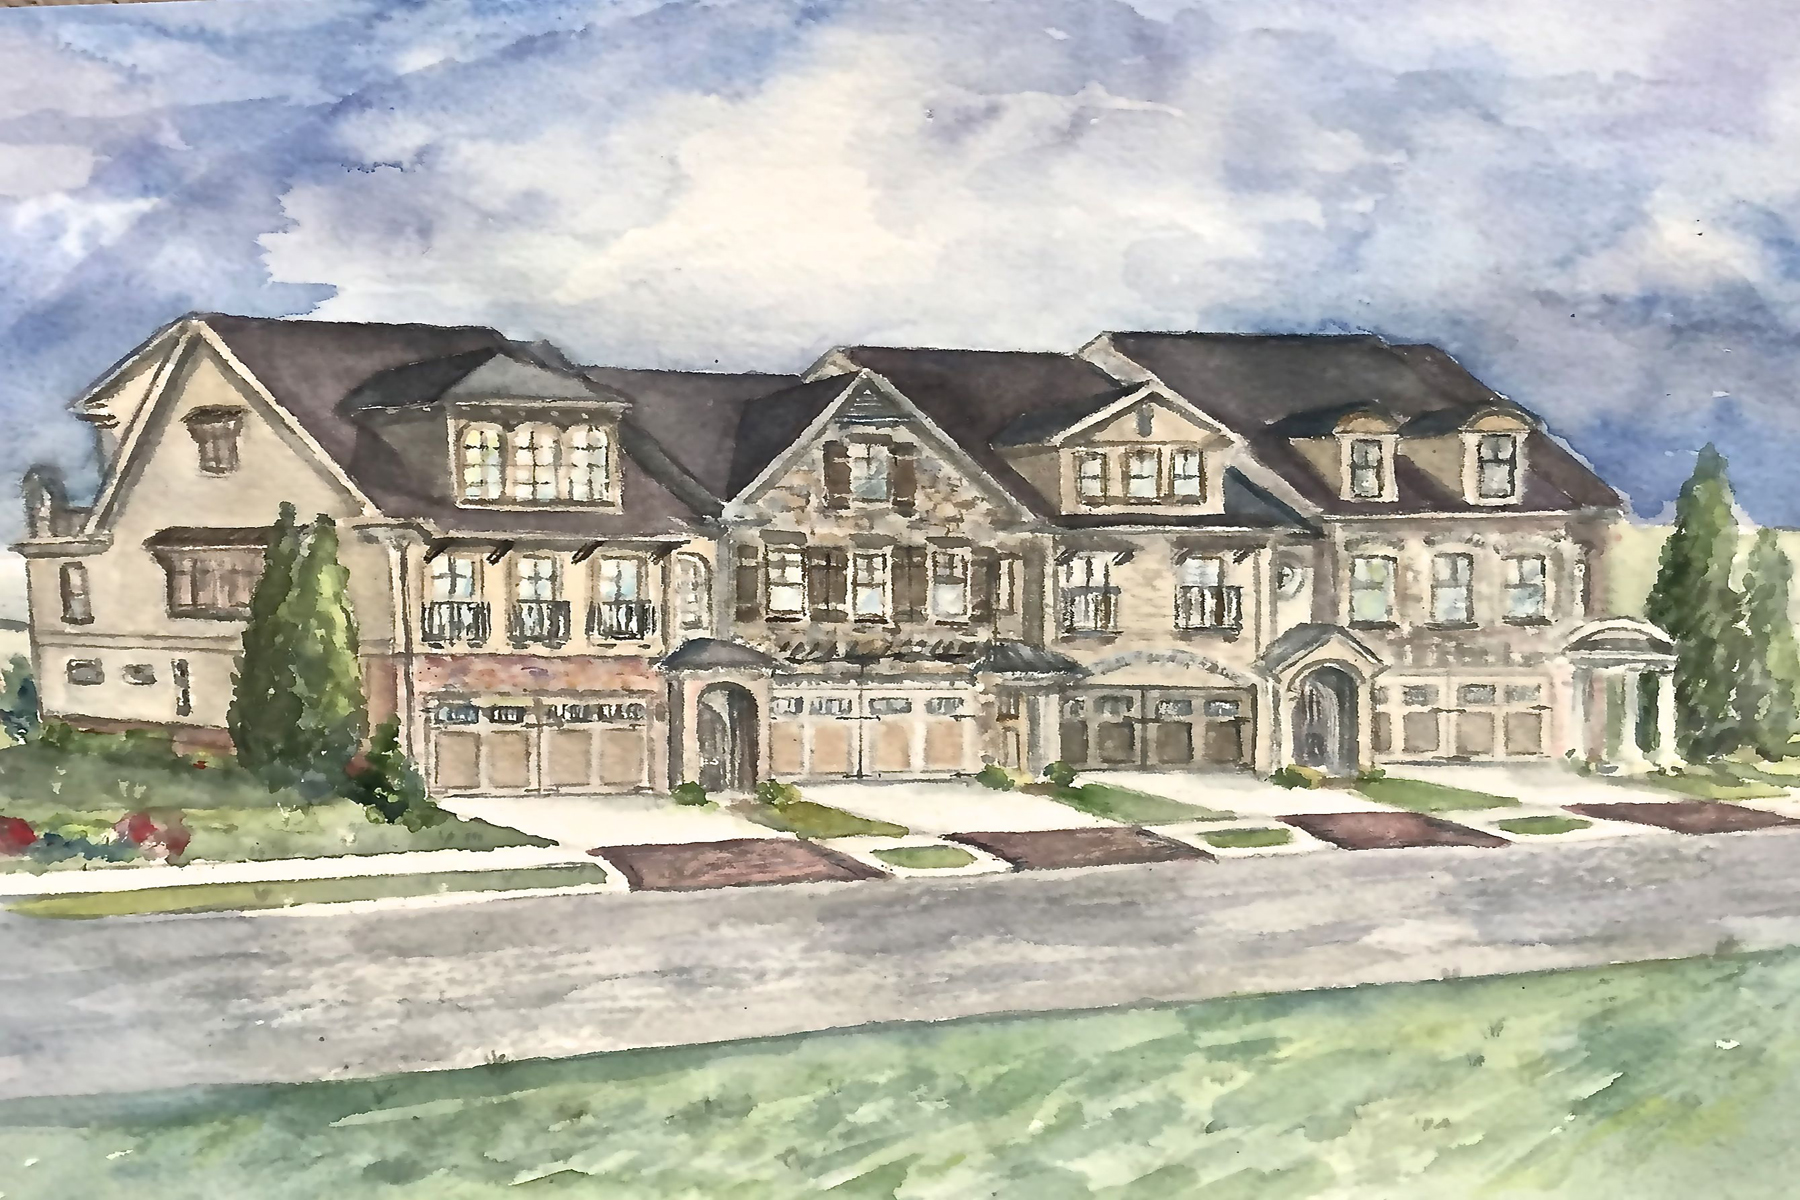 Single Family Home for Sale at Gated Enclave In Woodstock 306 Via del Corso Woodstock, Georgia 30188 United States